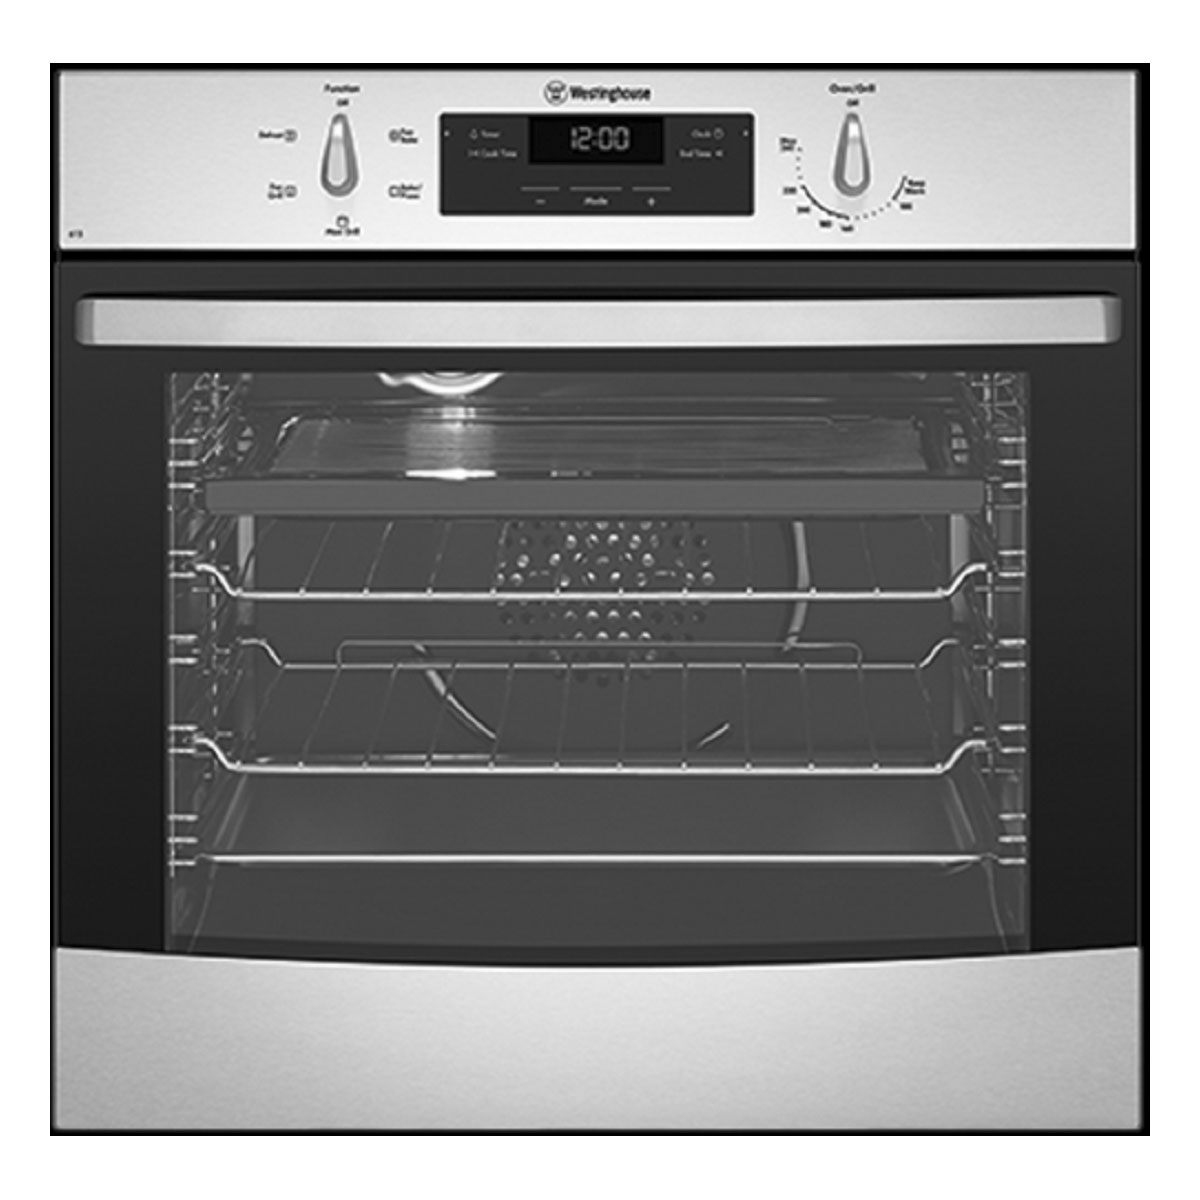 Westinghouse WVE615S Built-In Oven